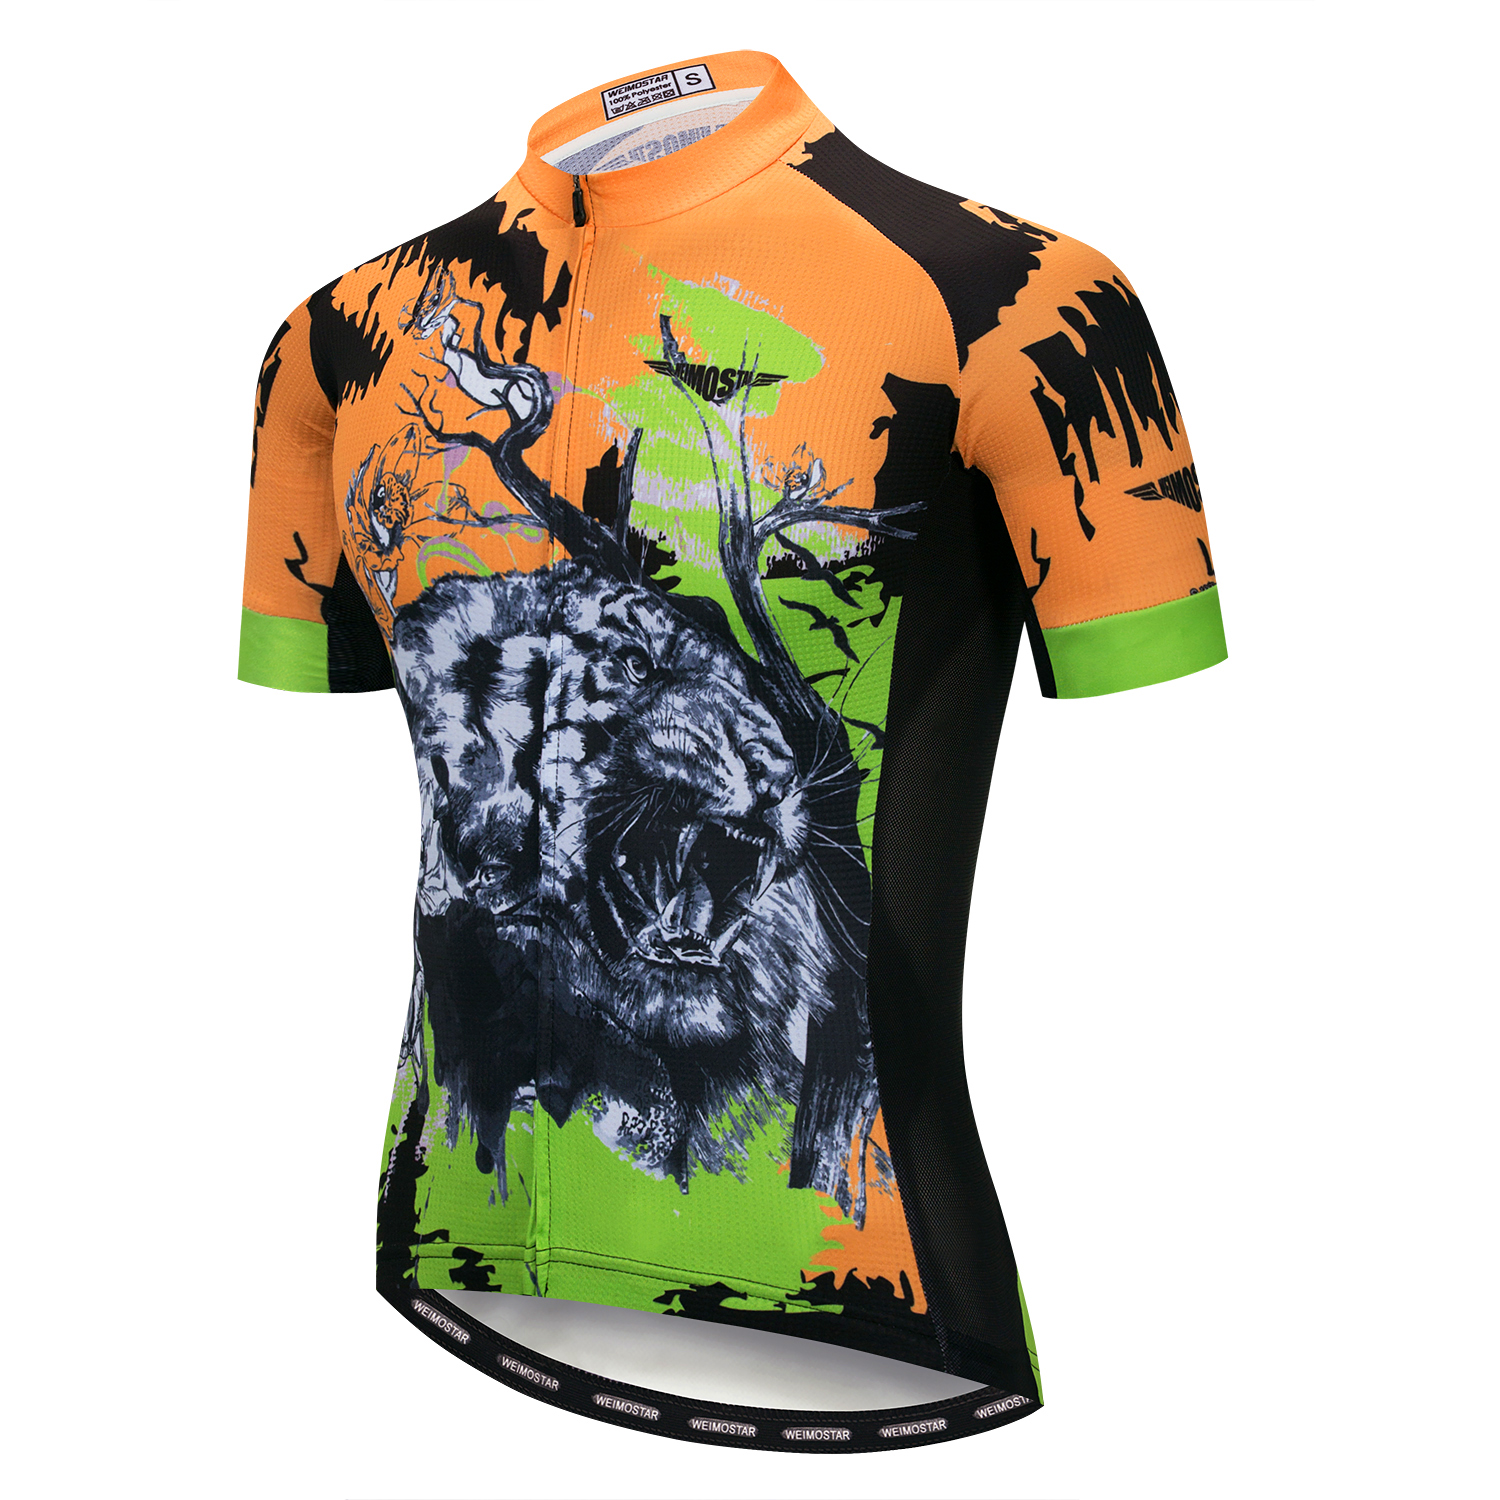 Details about Tiger Cycling Jersey Men Bicycle Clothing Set MTB Short  Sleeve Bike Shorts Tops bd129dd7d